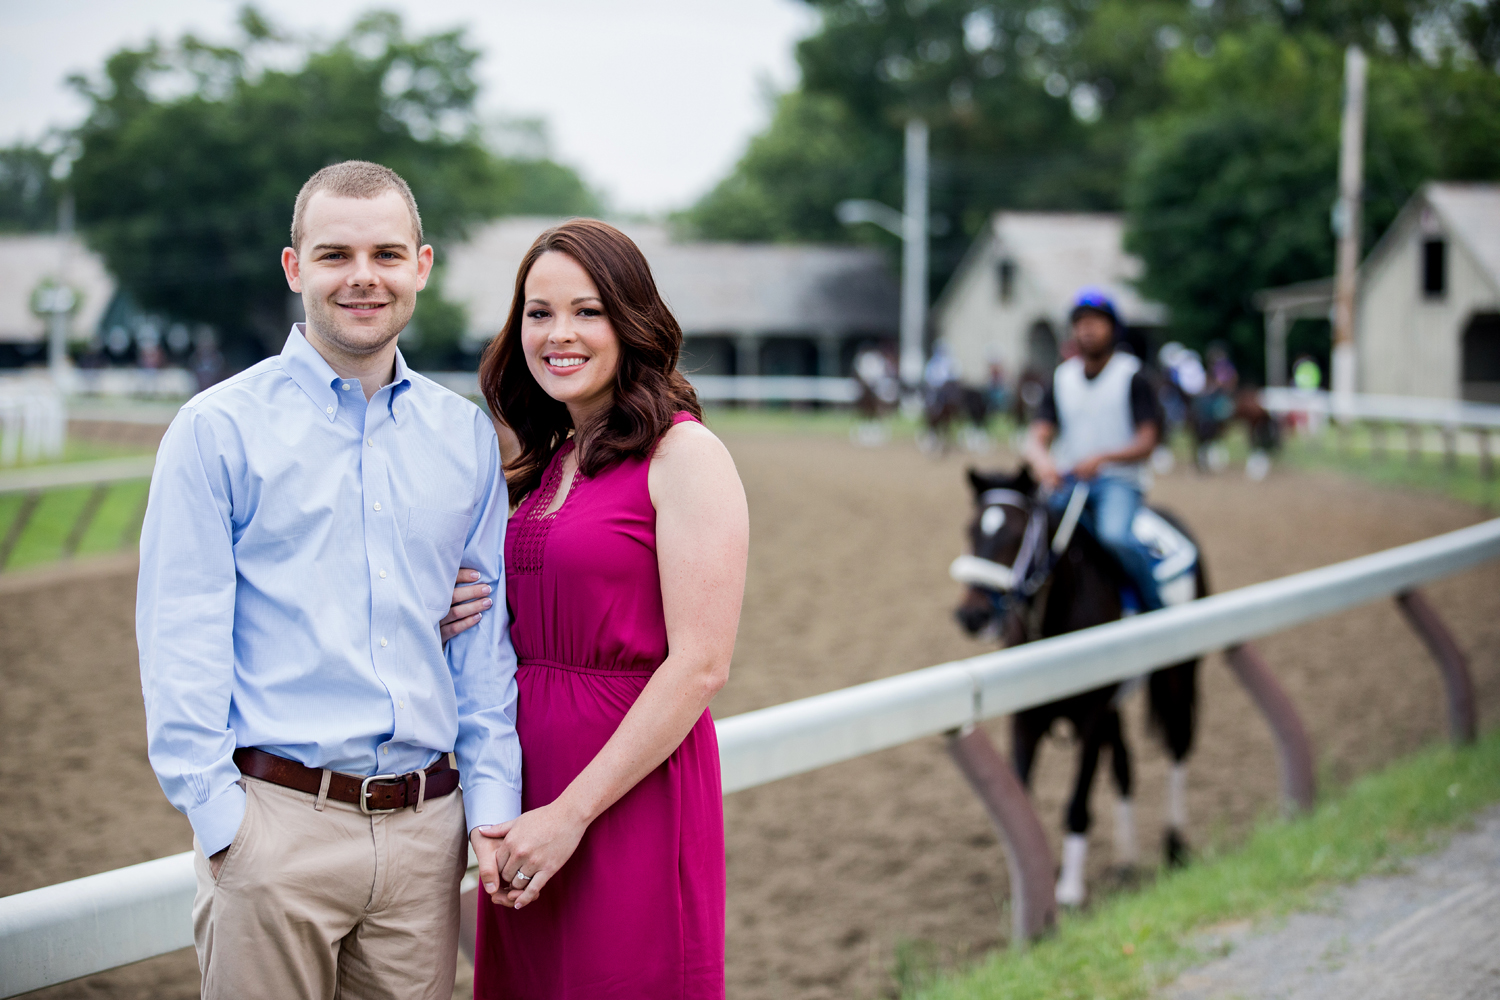 Saratoga NY Engagement and Horse Photography21.jpg